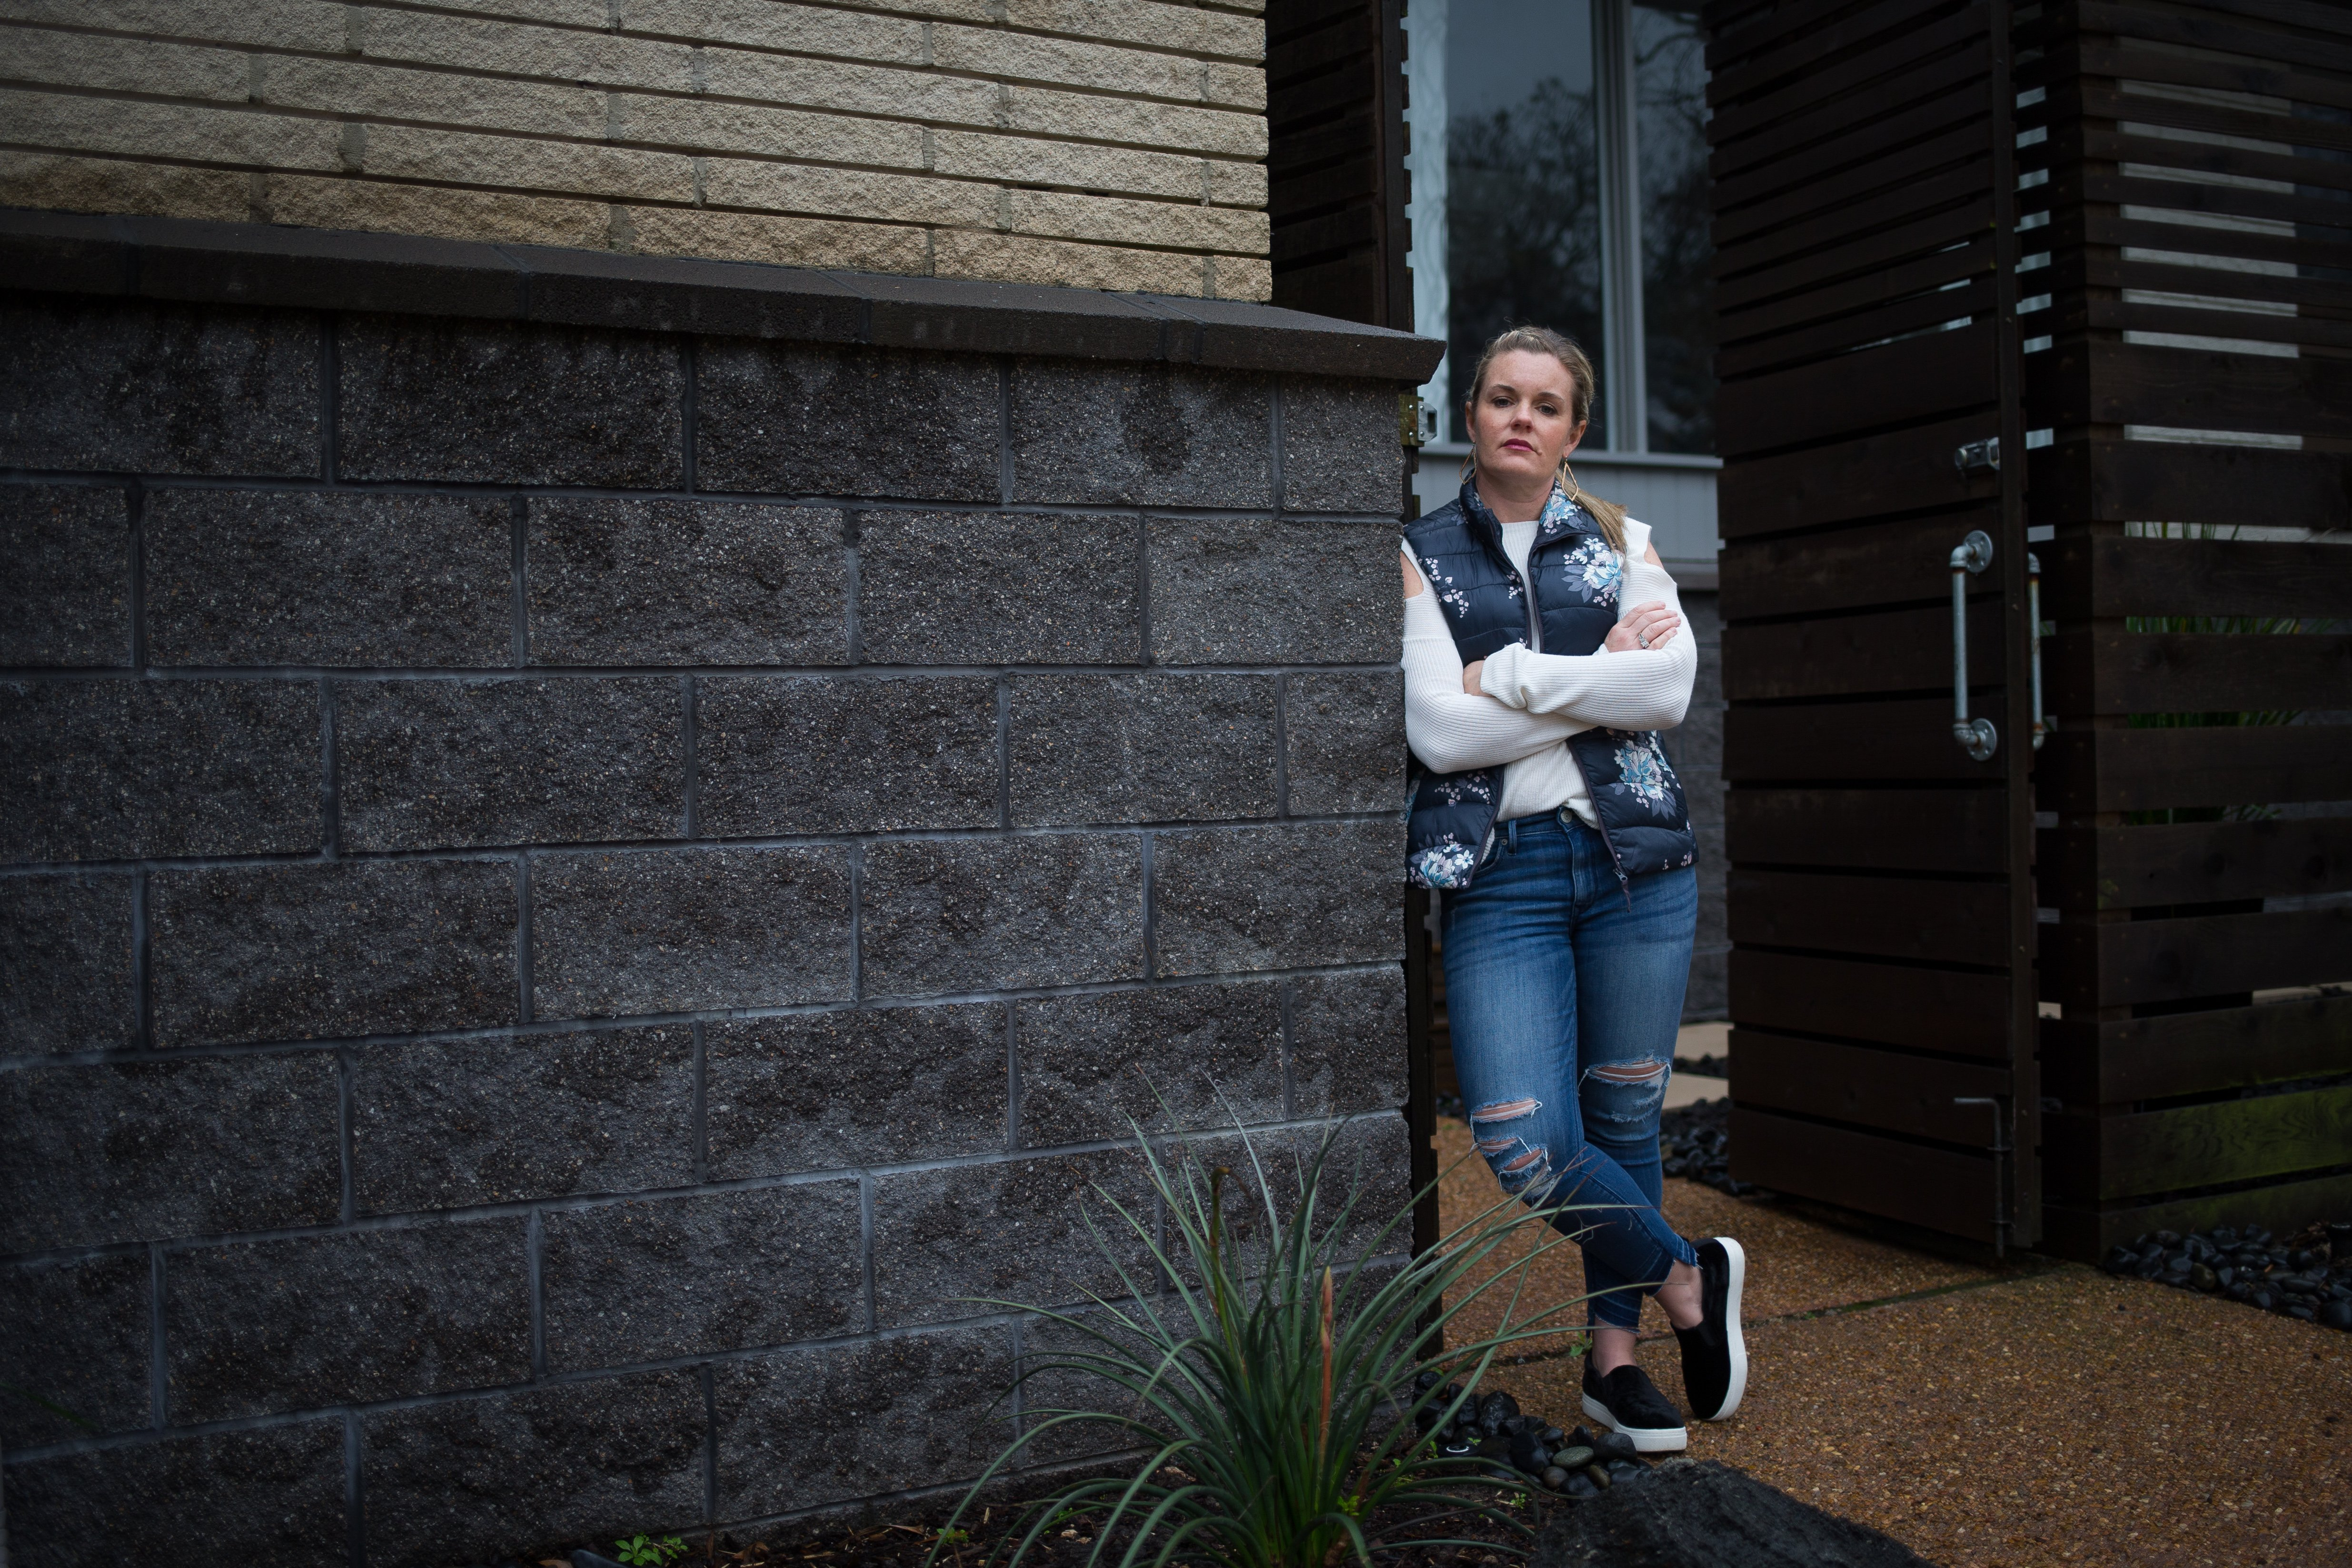 Erin Anders stands in front of her family's home in Houston's Meyerland neighborhood on Feb. 13, 2018. Anders and her husband, Doug Anders, elevated their home in 2017 prior to Hurricane Harvey, saving it from potentially catastrophic damage. The couple and their two children evacuated using inflated pool floats as the floodwaters rose around their home.